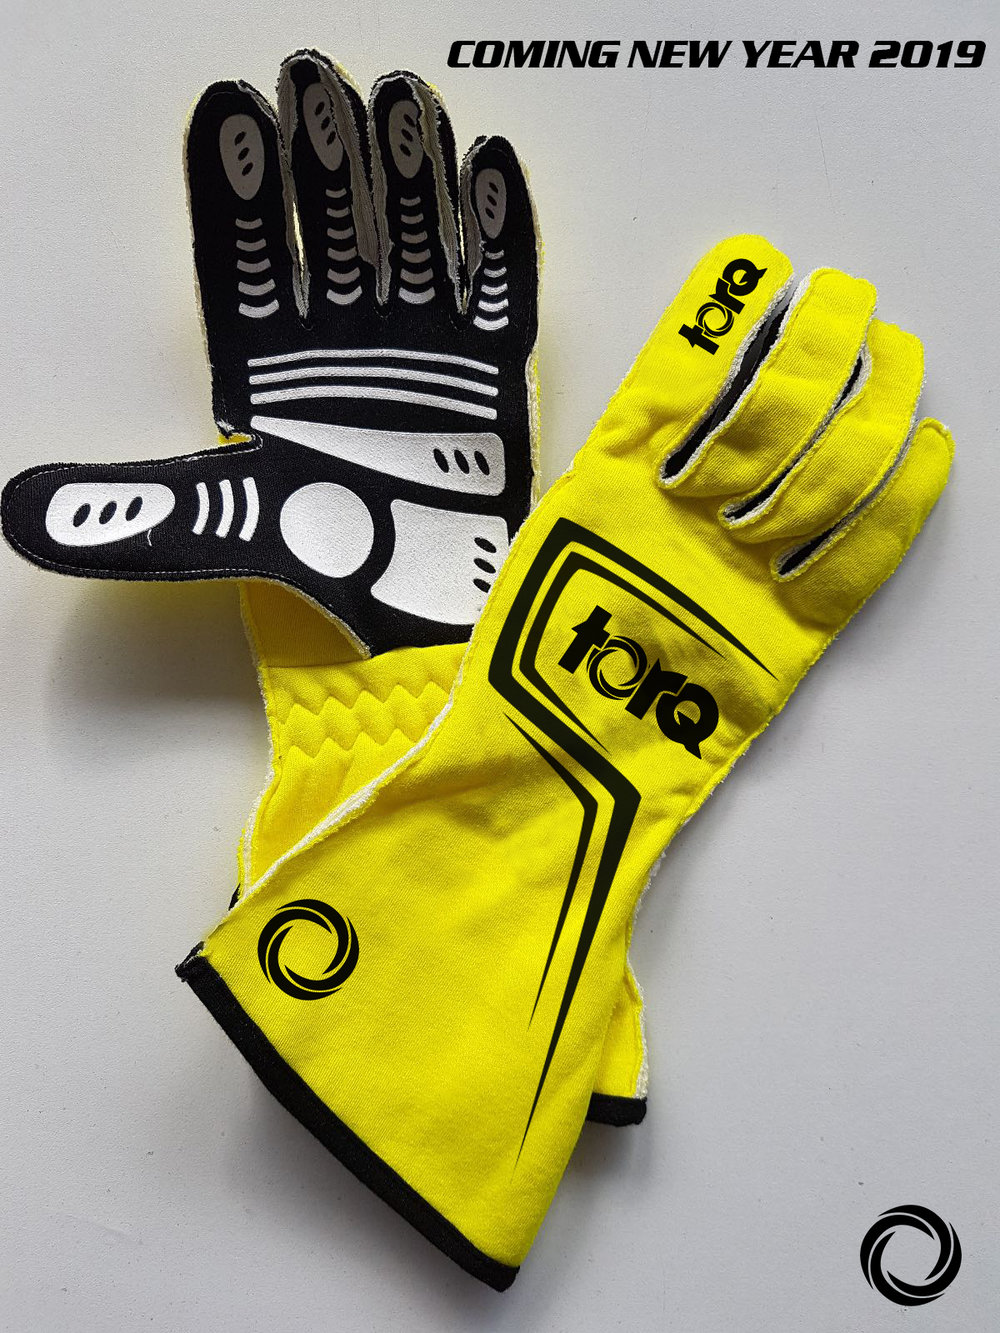 TRST1 yellow fluo.jpg